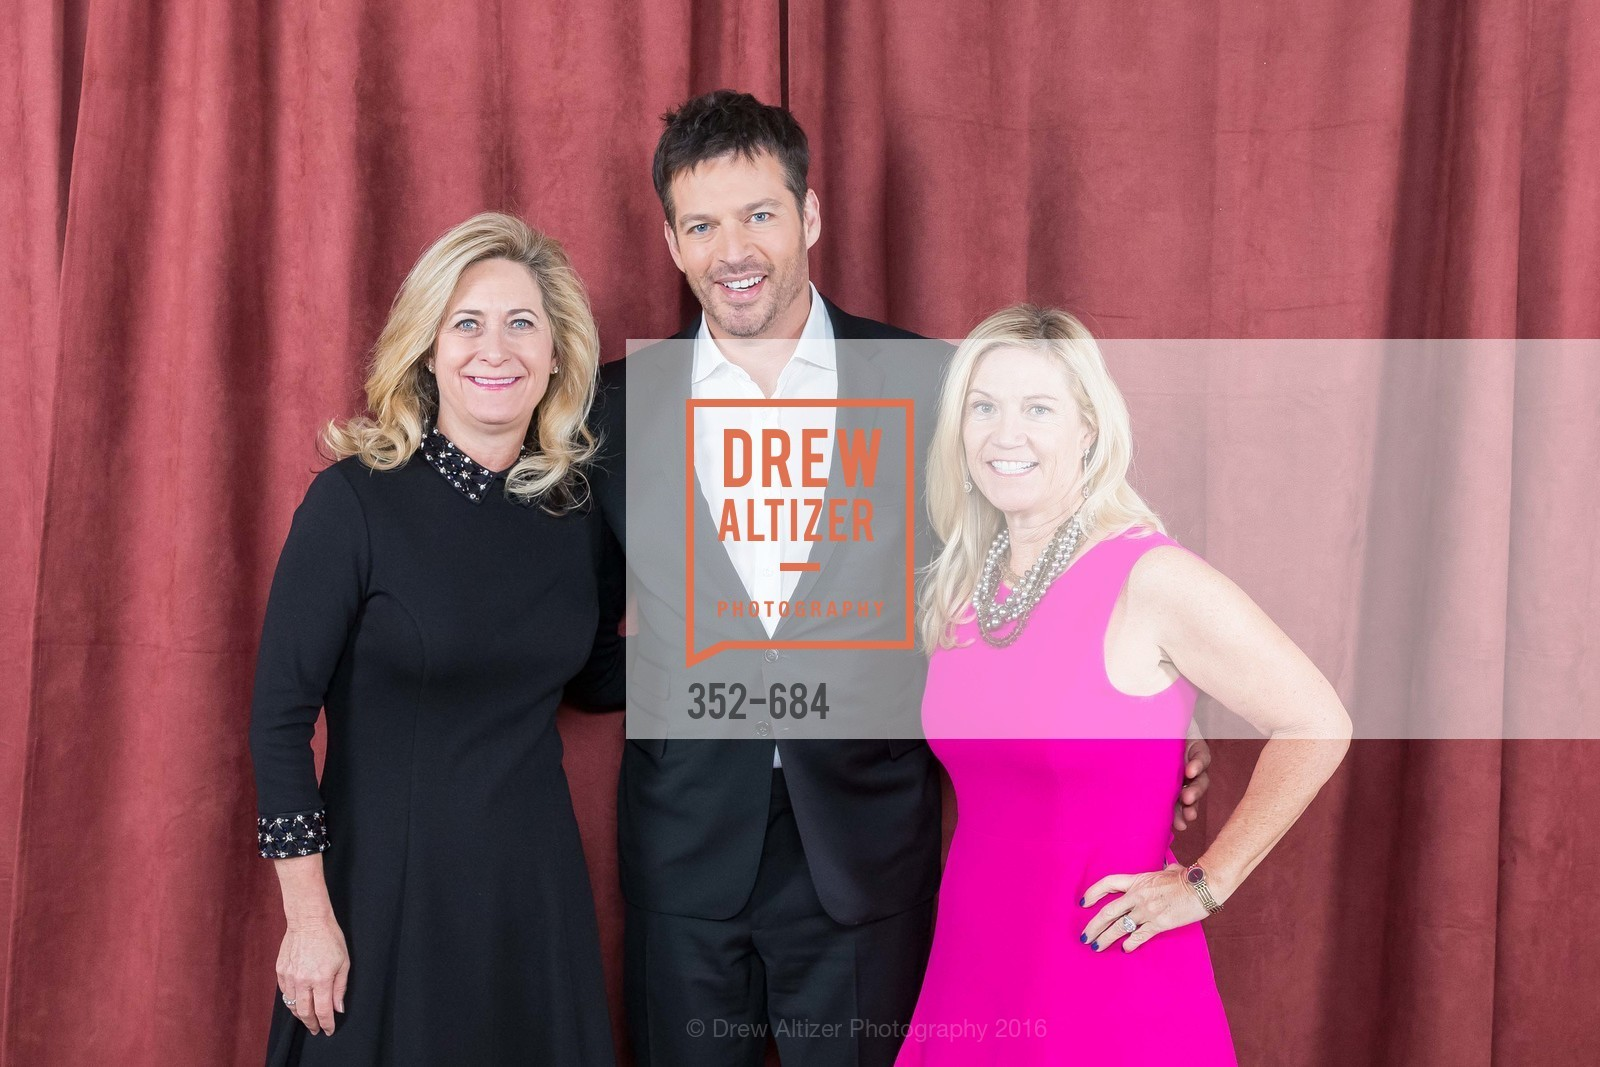 Michelle Culhane, Harry Connick Jr., Mary Stephens, Under One Umbrella, Sharon Heights Golf and Country Club, January 13th, 2016,Drew Altizer, Drew Altizer Photography, full-service agency, private events, San Francisco photographer, photographer california